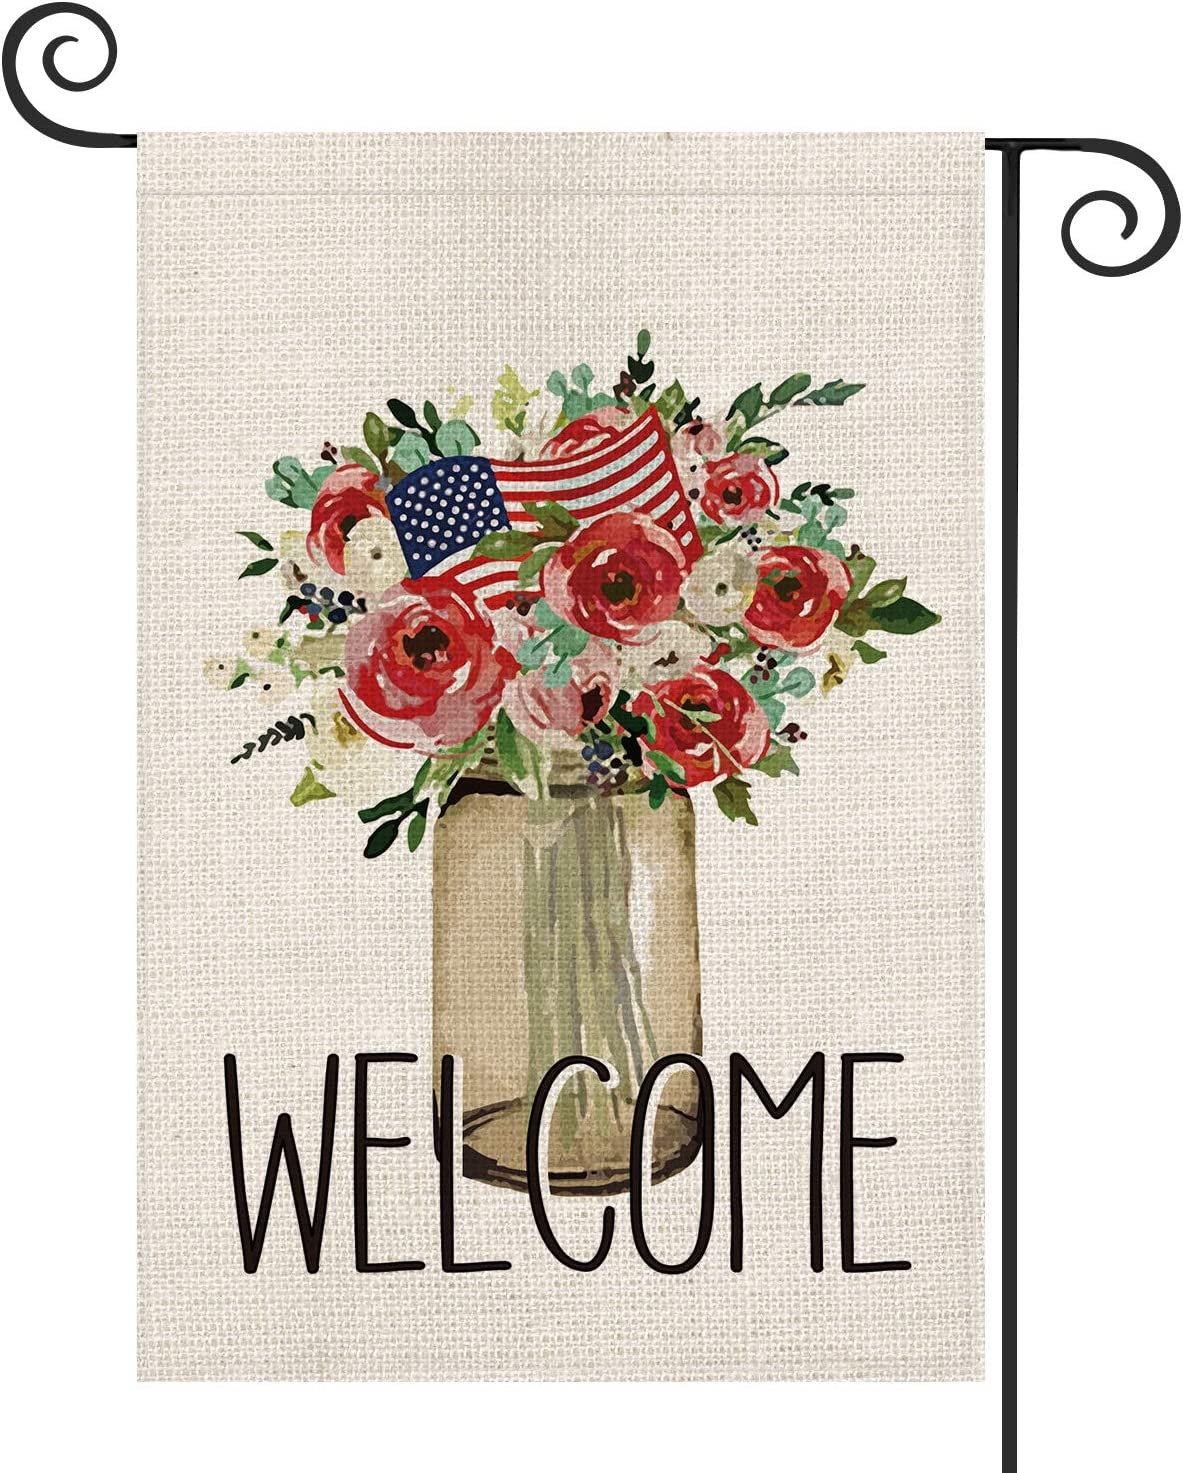 AVOIN Welcome Flowers Vase American Flag Garden Flag Double Sided, 4th of July Patriotic Memorial Day Independence Day Yard Outdoor Decoration 12.5 x 18 Inch